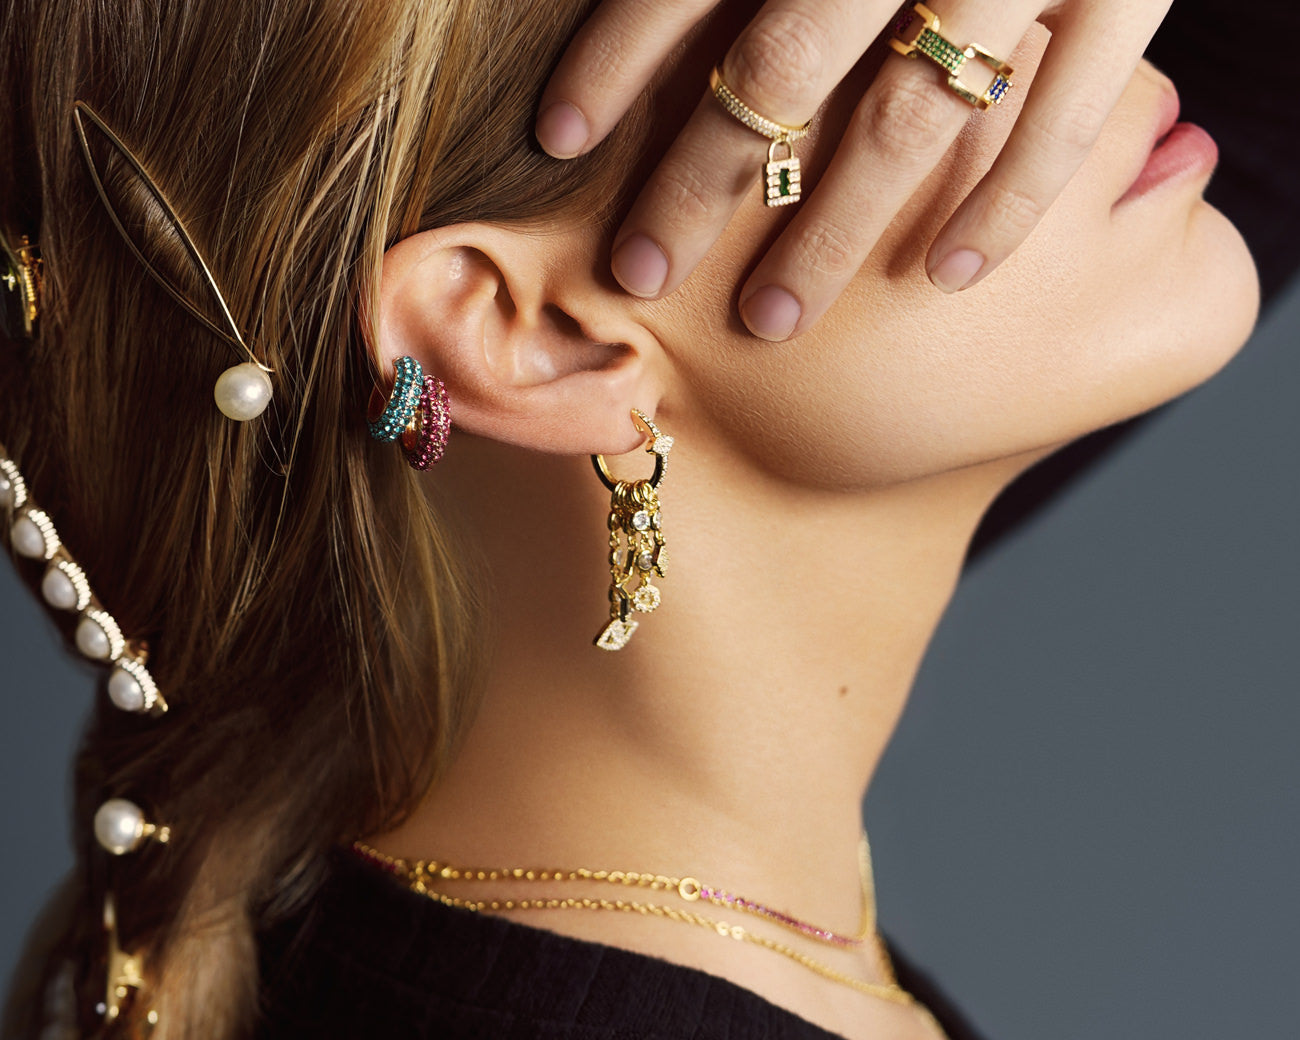 FAX Jewelry | 'Lucky Charms' Huggie Hoop Earrings in Gold | Model